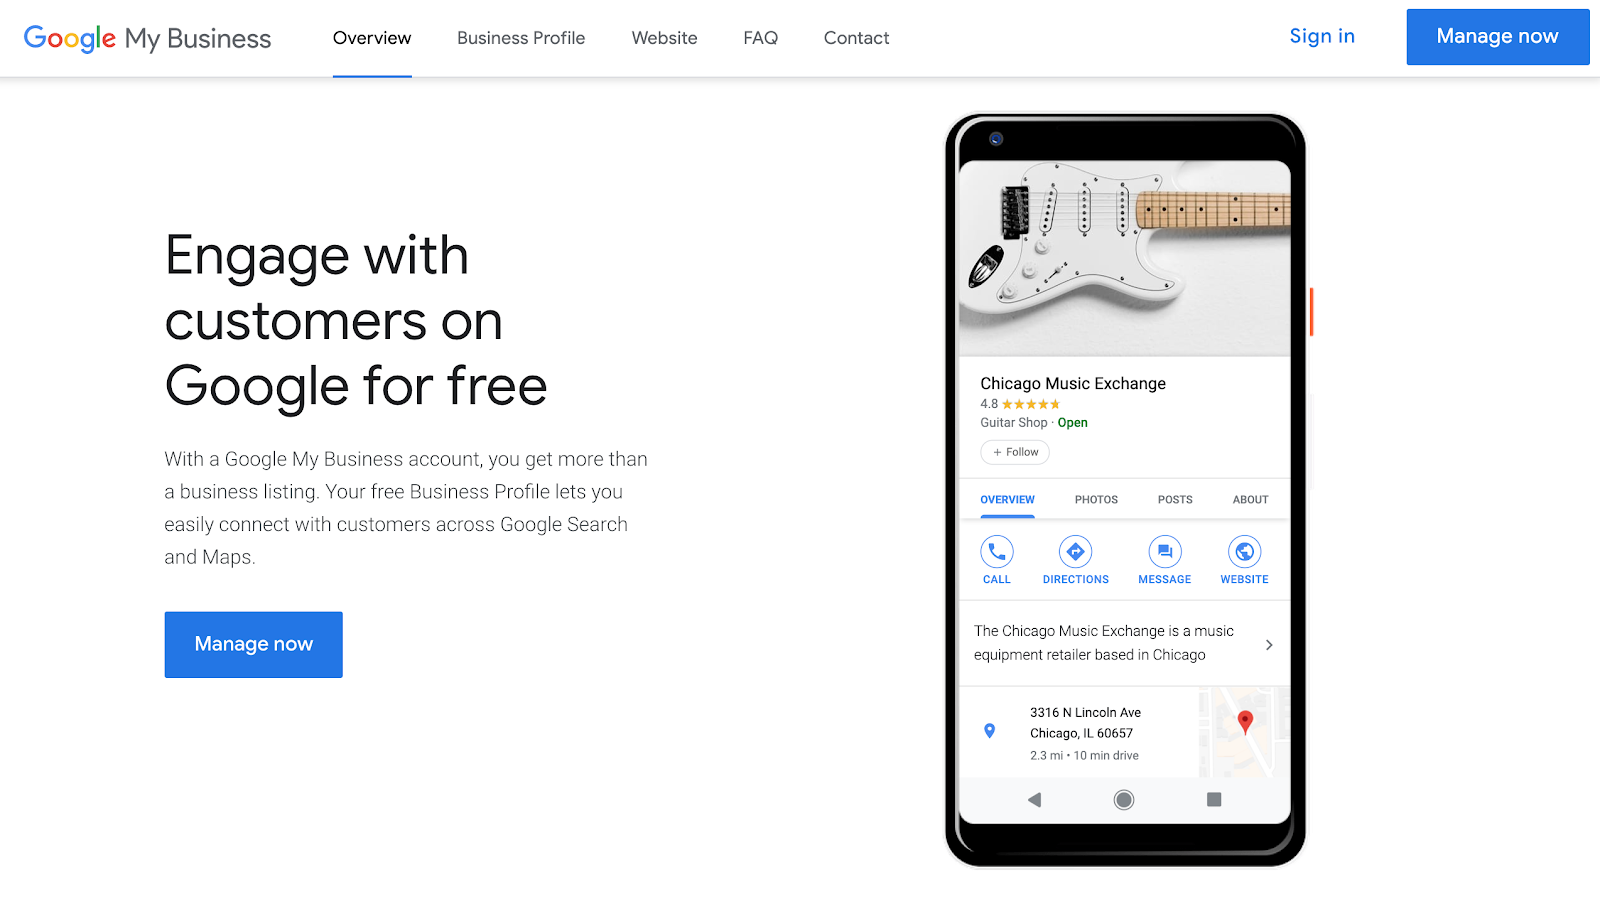 How to Get More Google Reviews: 17 Tips From the Pros